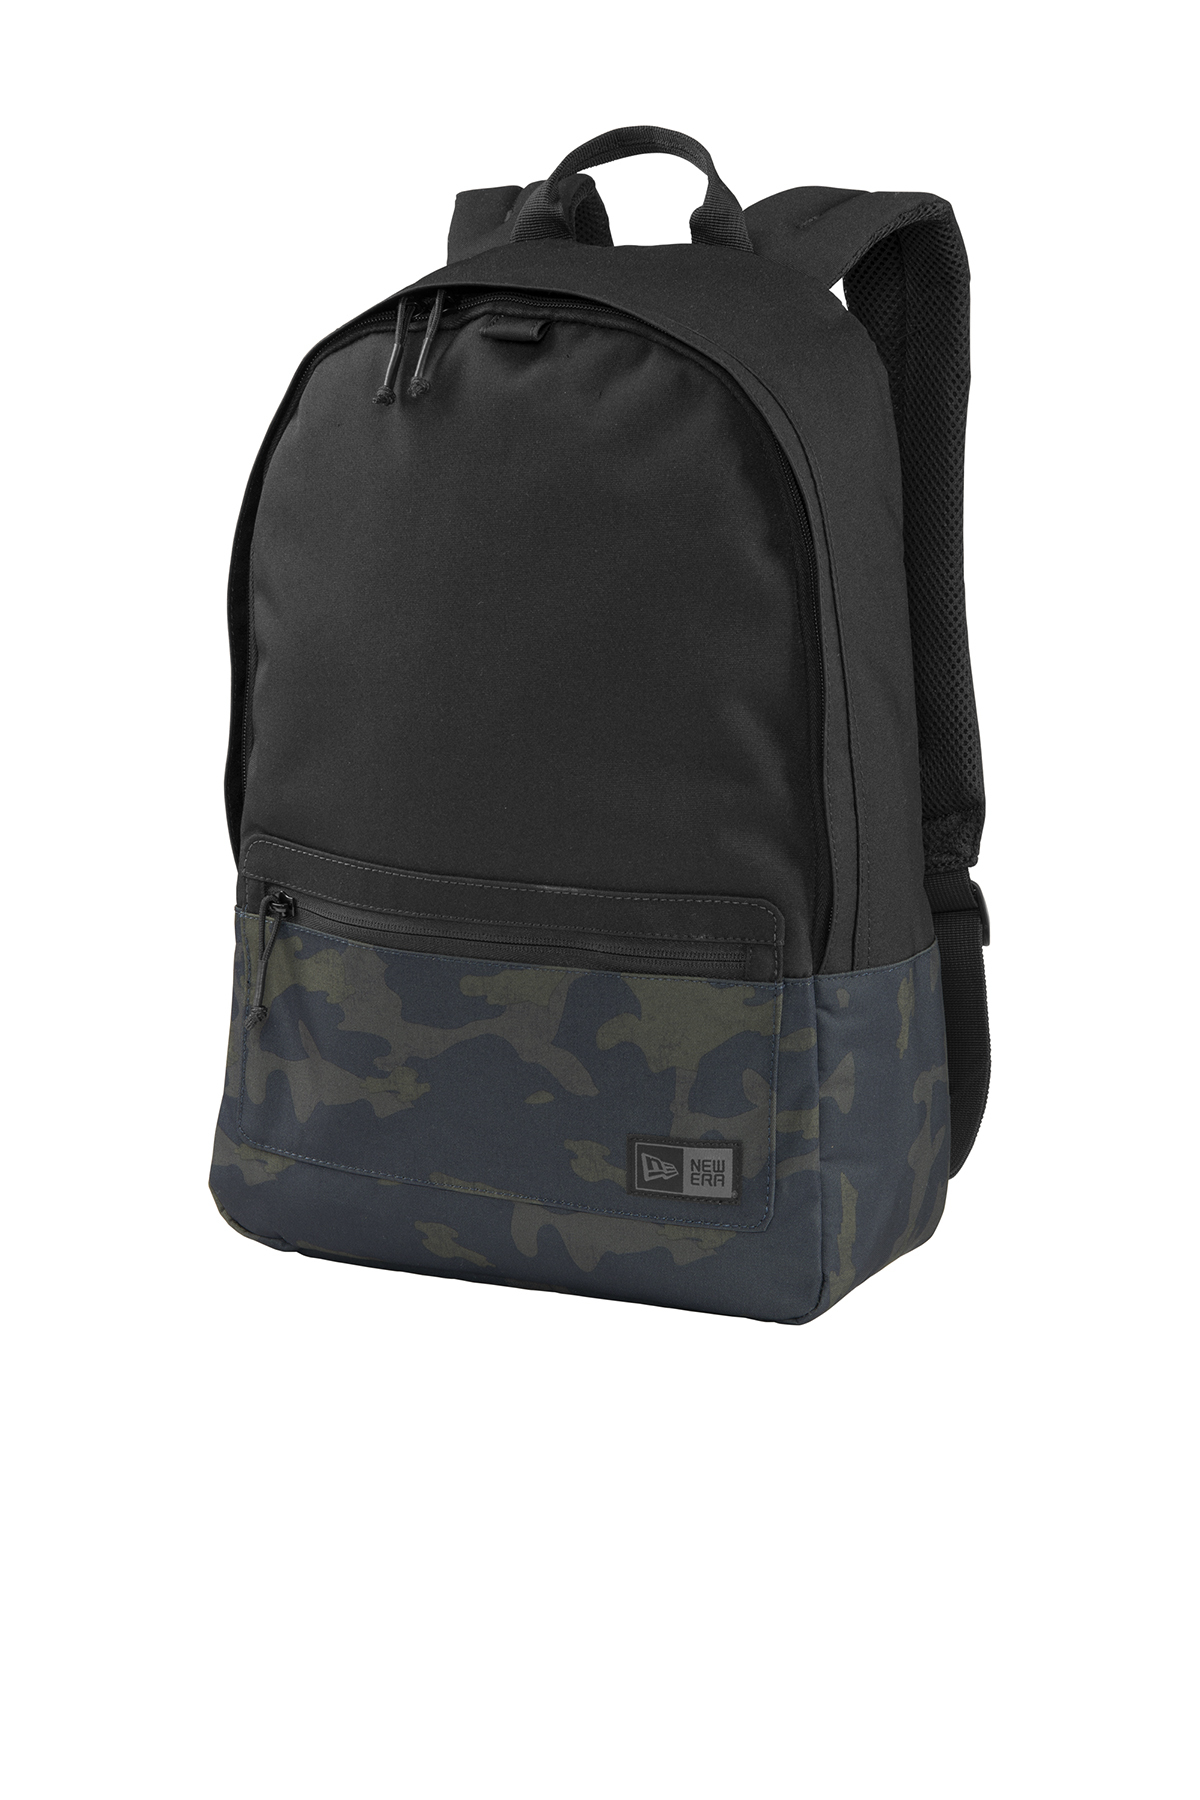 New Era NEB201 - Legacy Backpack